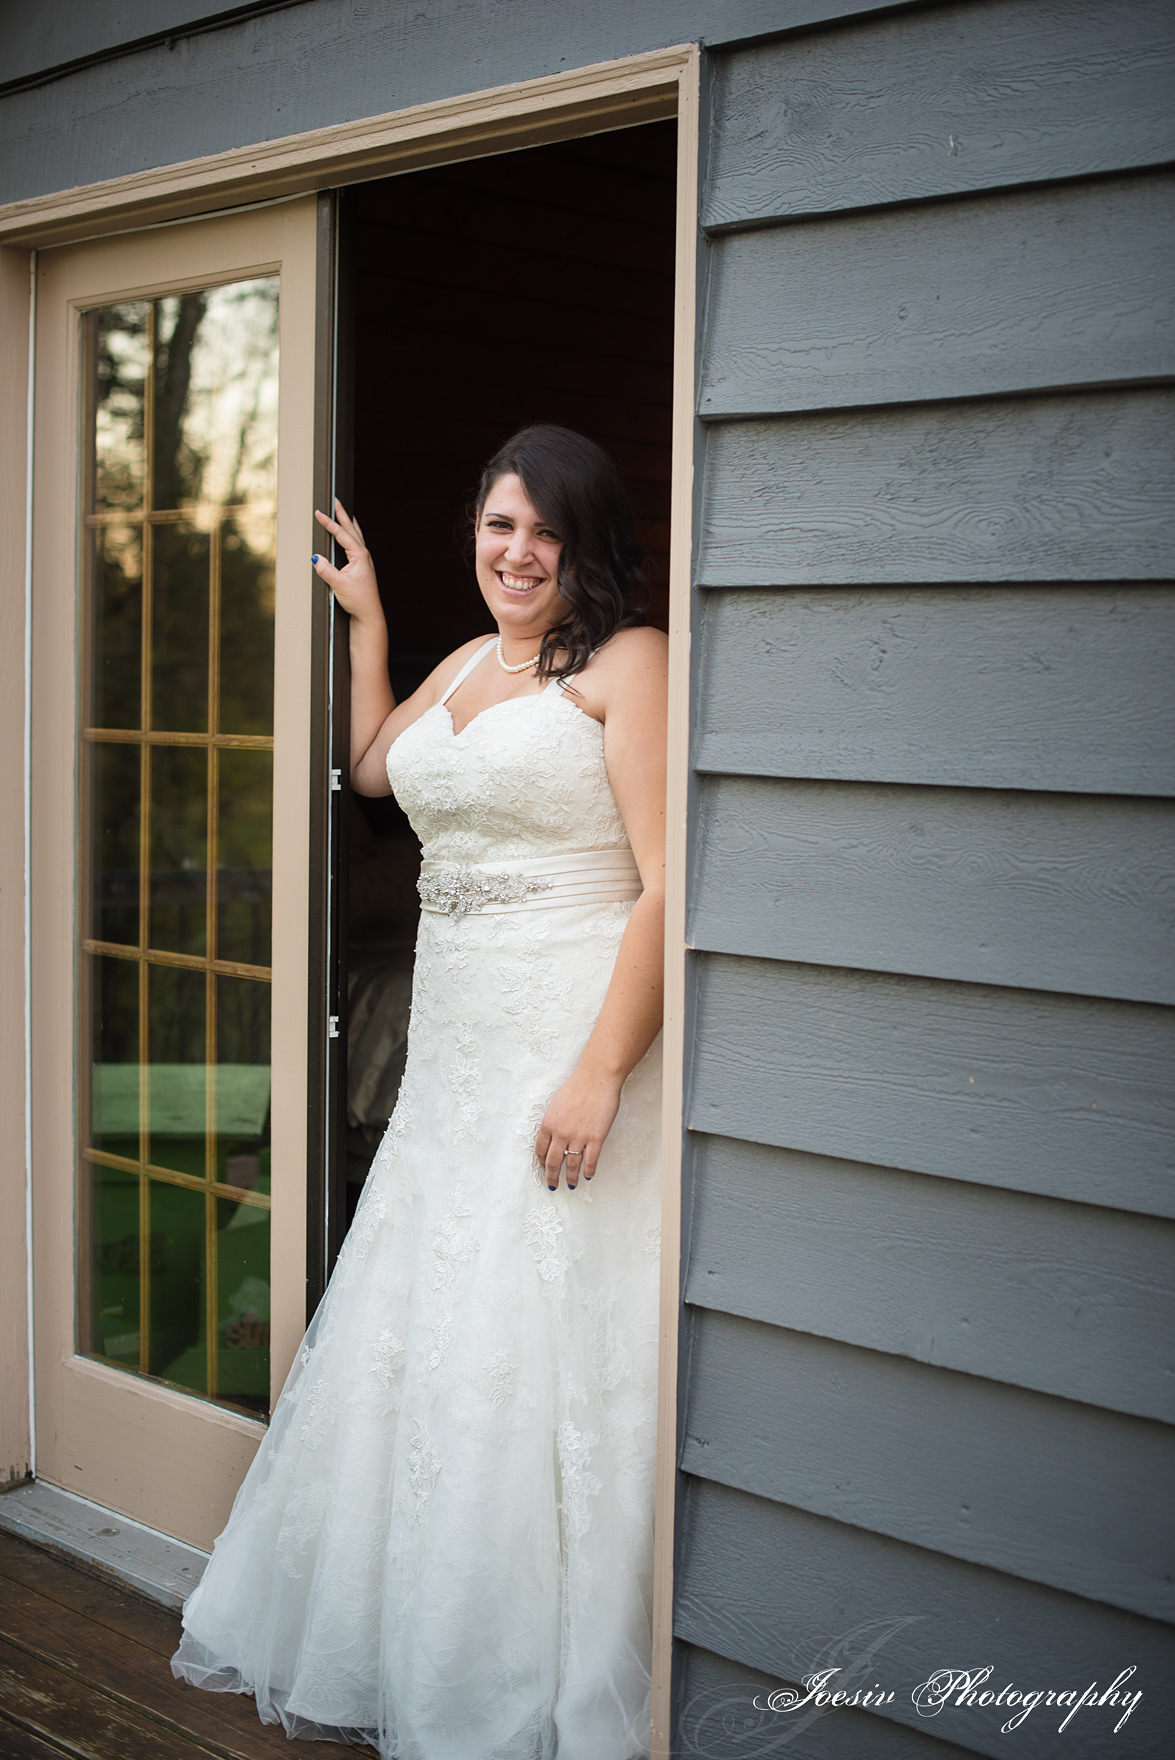 Outdoor Fall Wedding Photography by Joesiv Photography